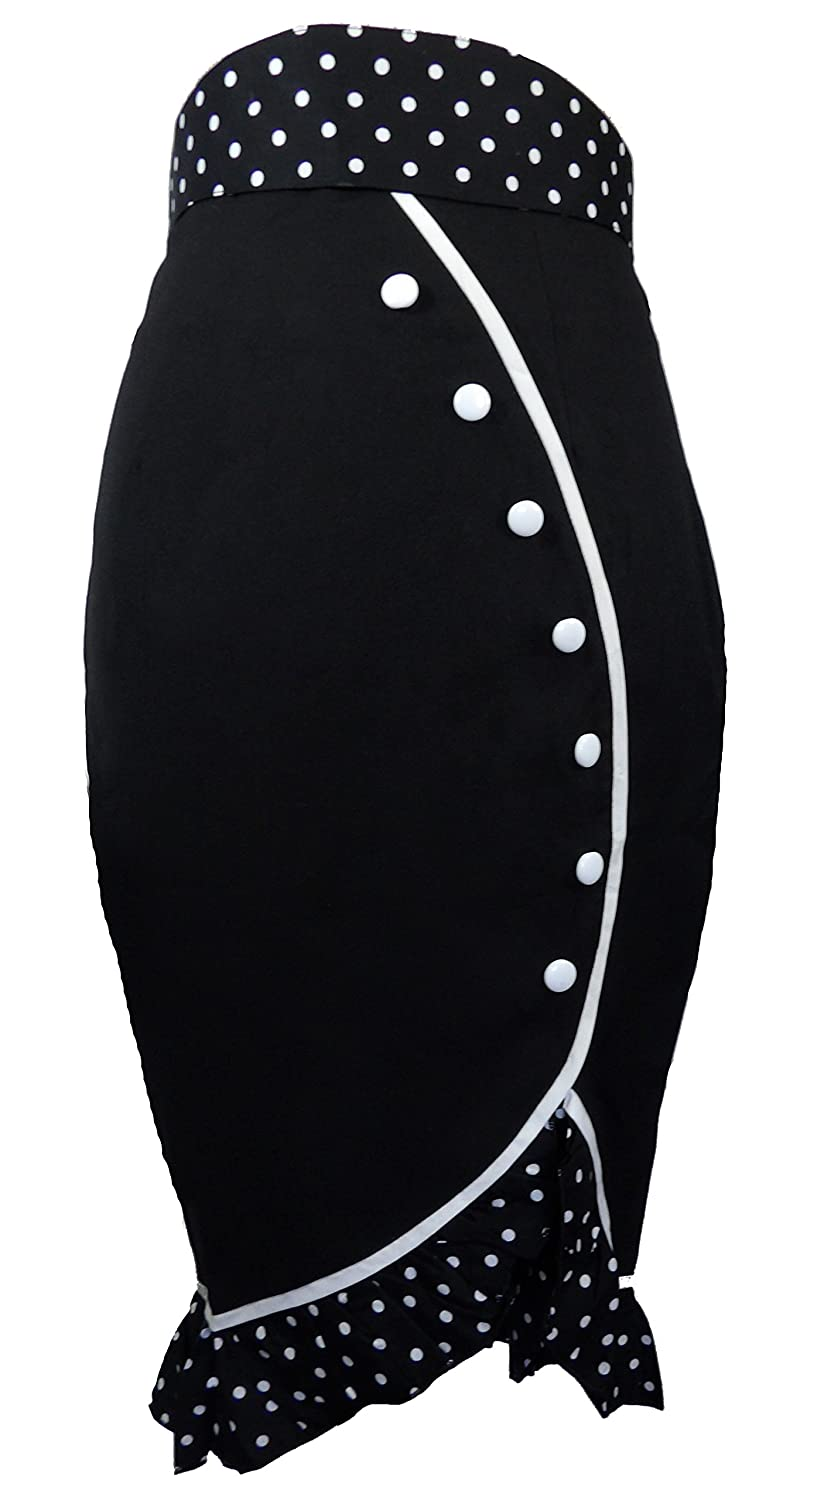 (XS-28) Deadly Tulip - Black 50s 60s Pencil Polka-Dot Pinup Retro High Waist Skirt